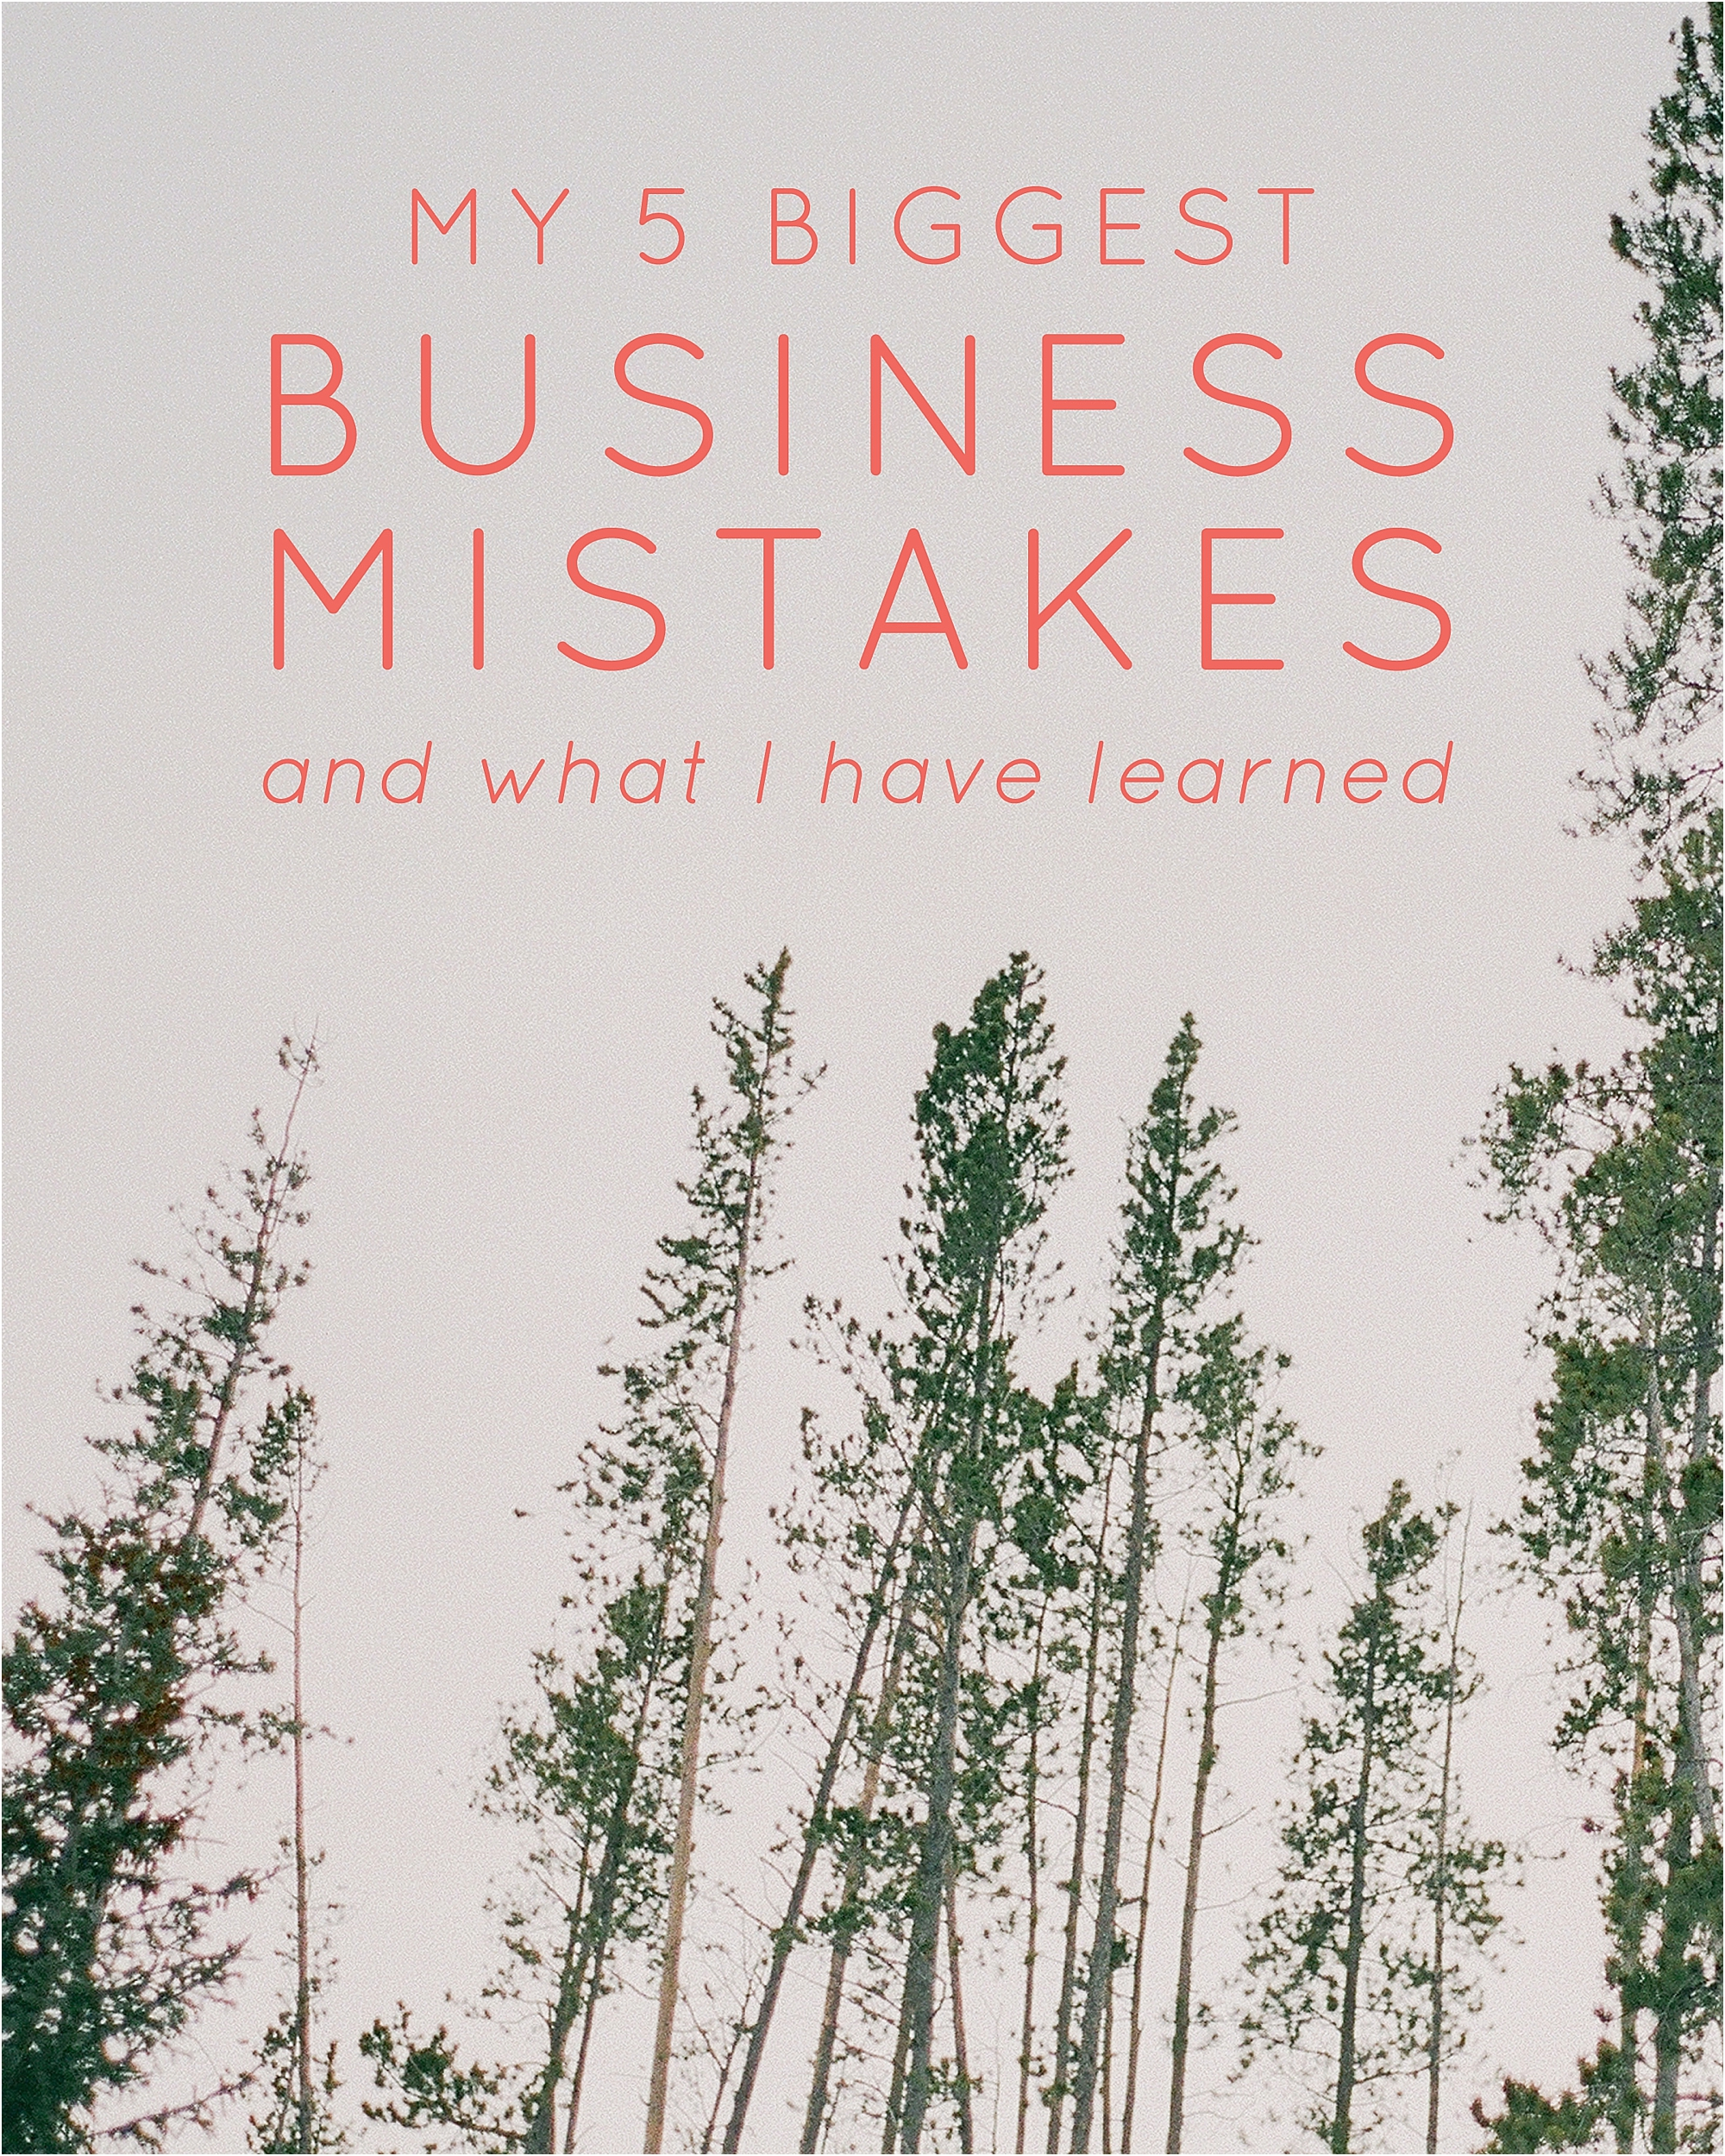 My 5 Biggest Business Mistakes - The Jordan Brittley Blog